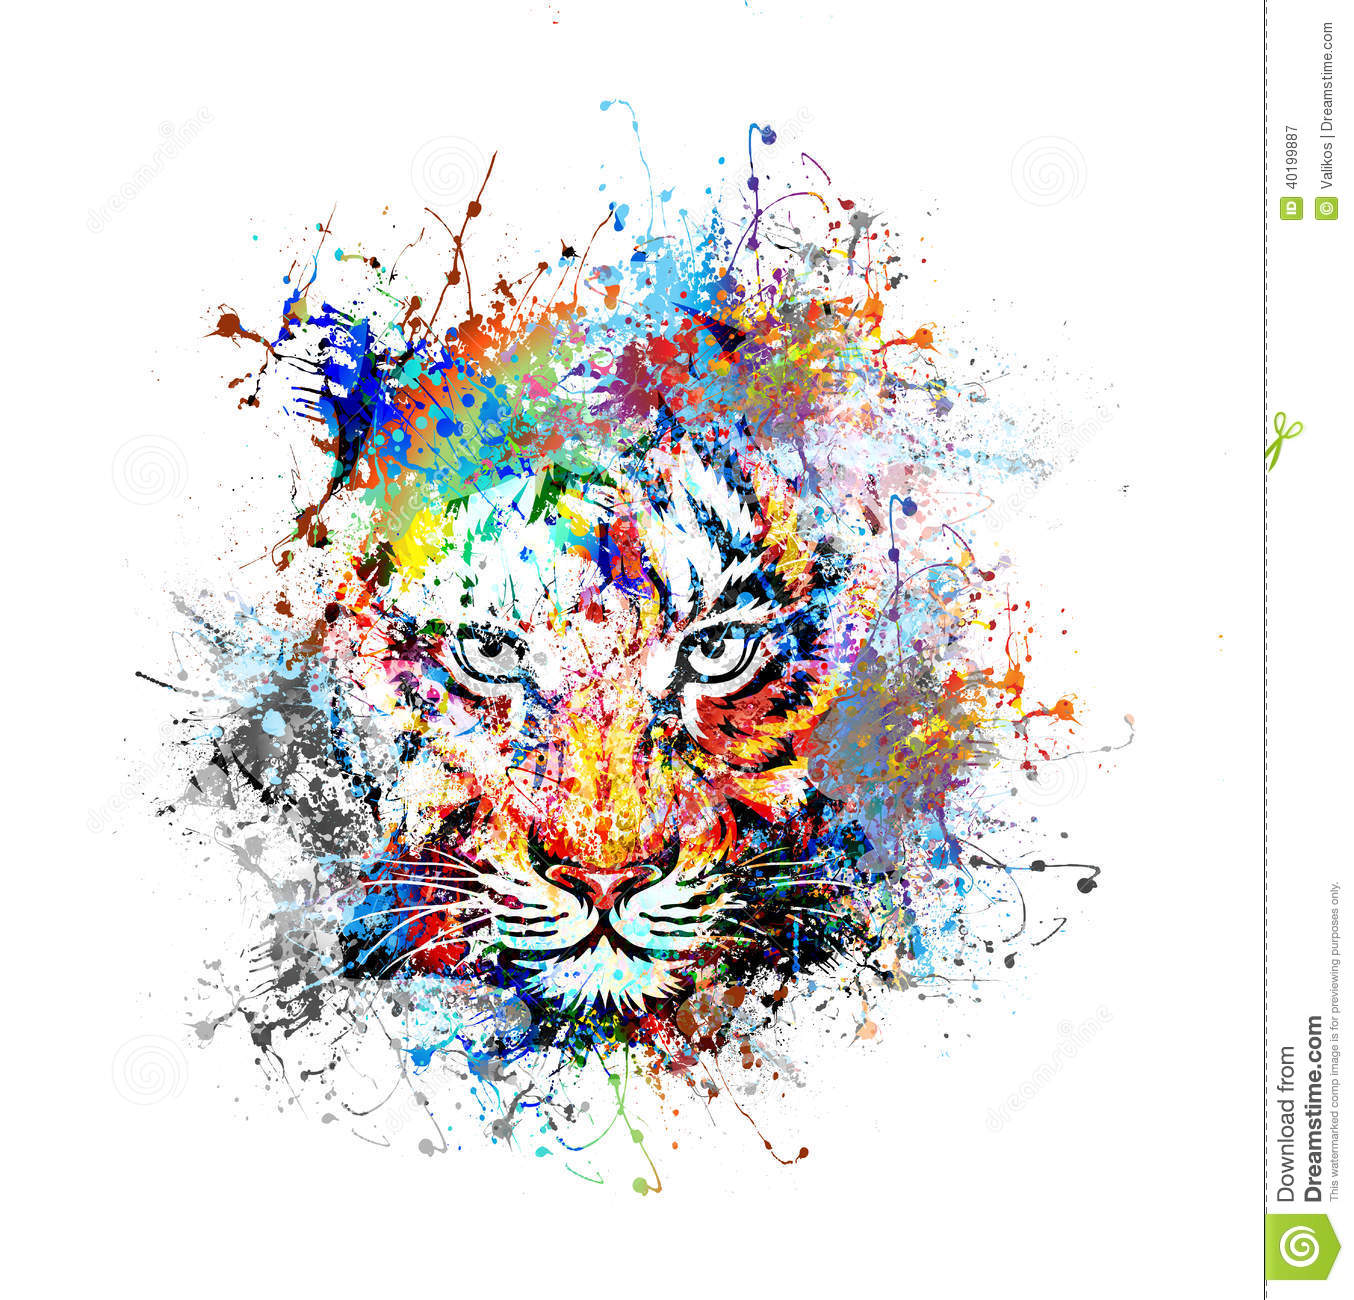 abstract art picture with tiger stock illustration - image: 40199887